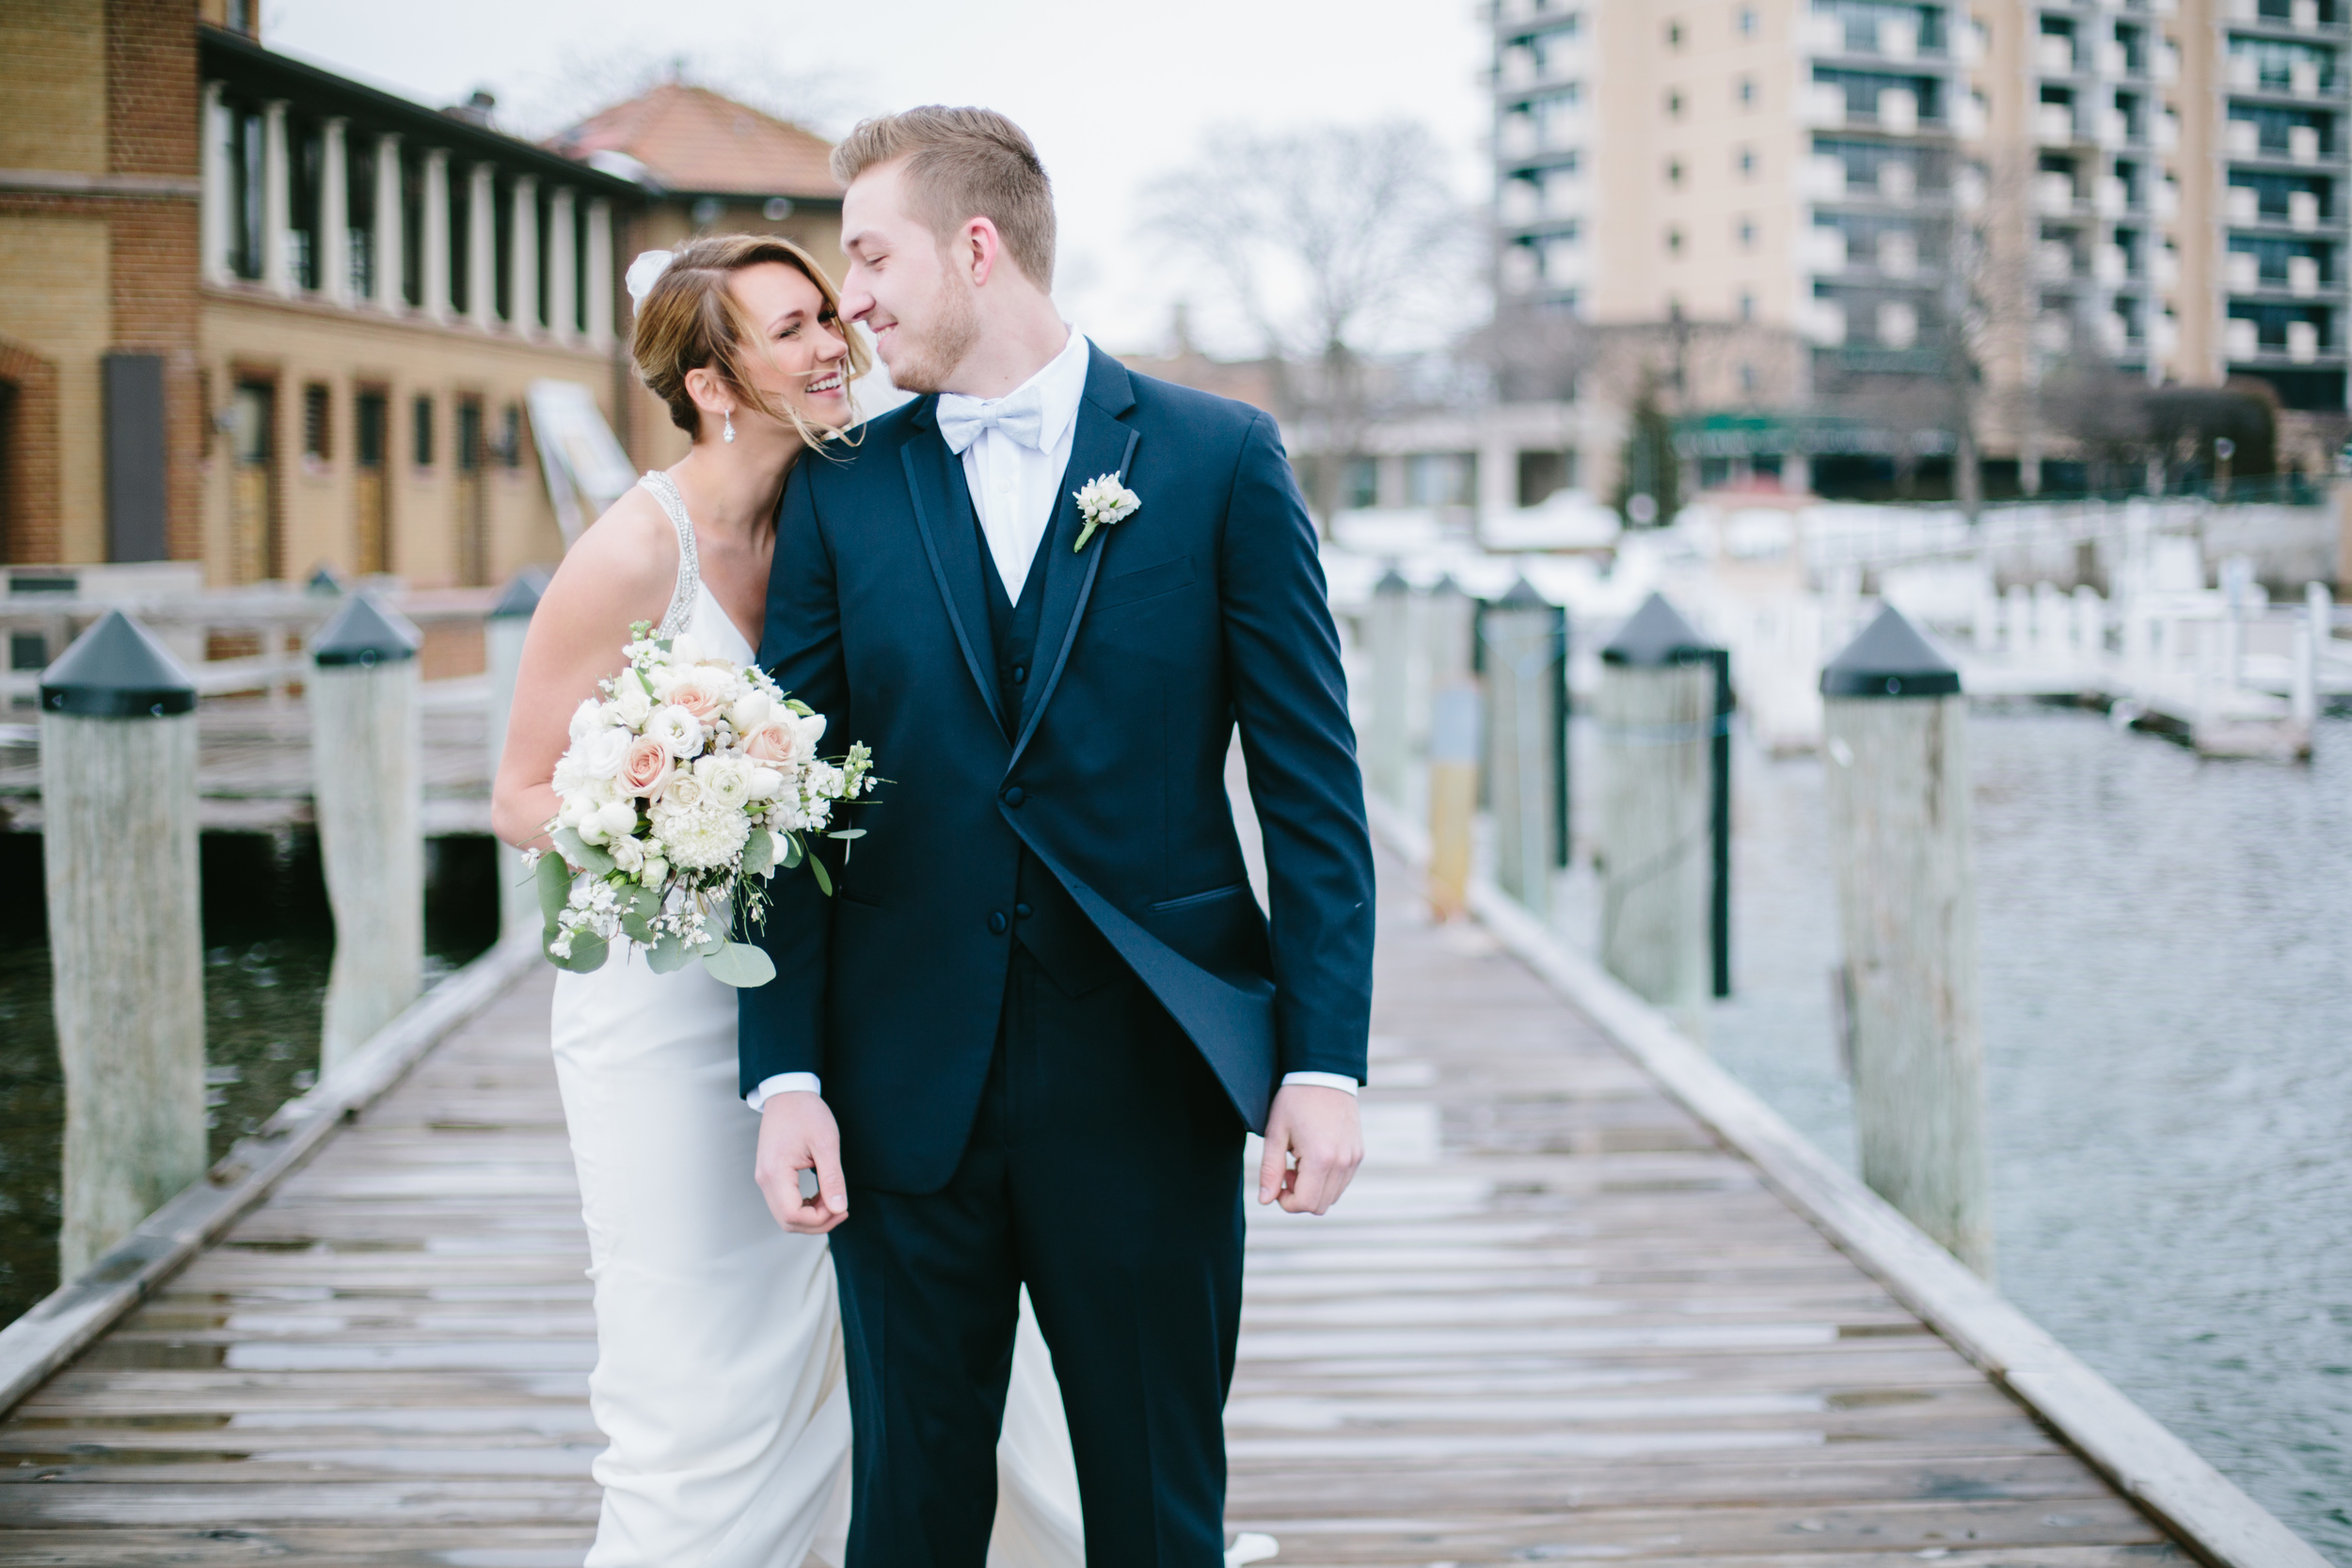 Sam and Jared_First Look (14 of 117).jpg